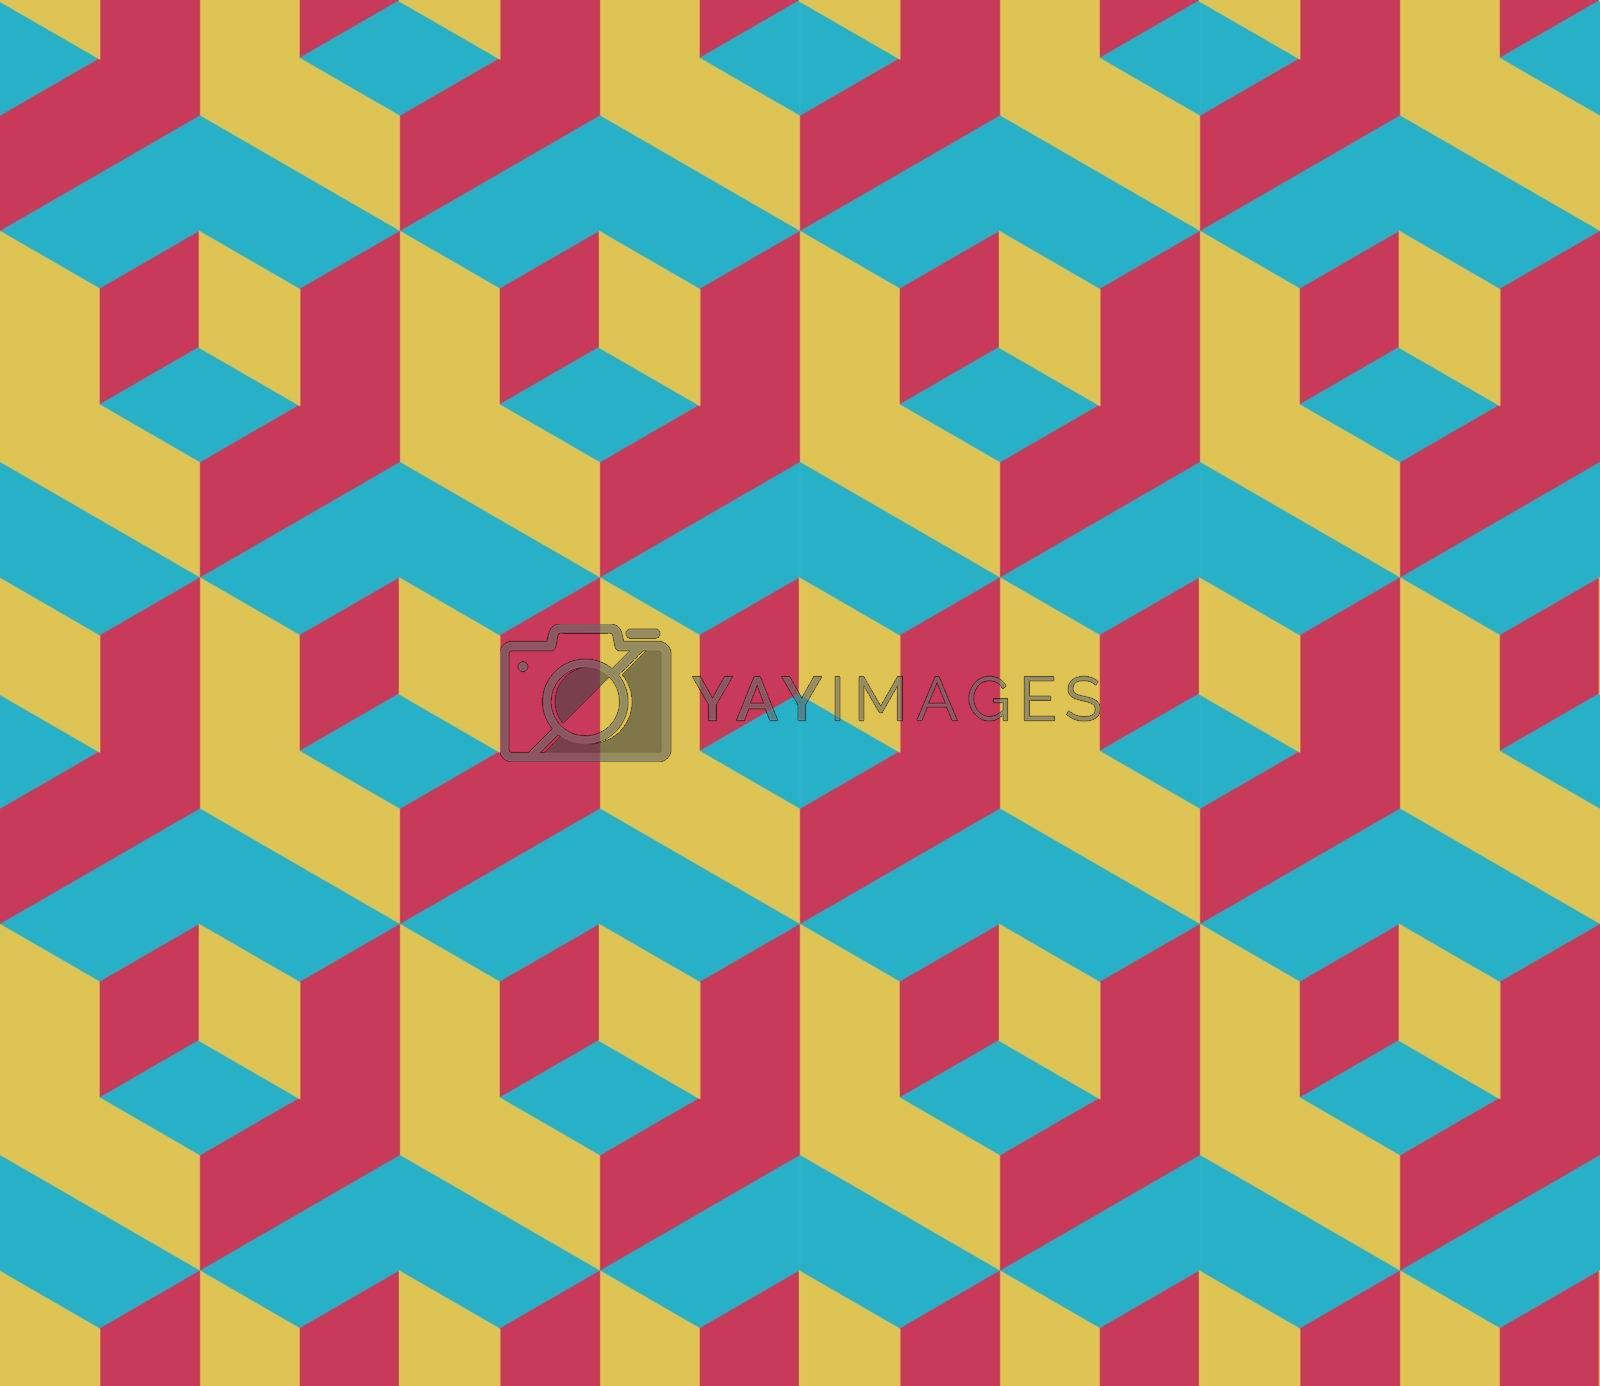 Retro colored cubic geometric seamless pattern by tommarkov